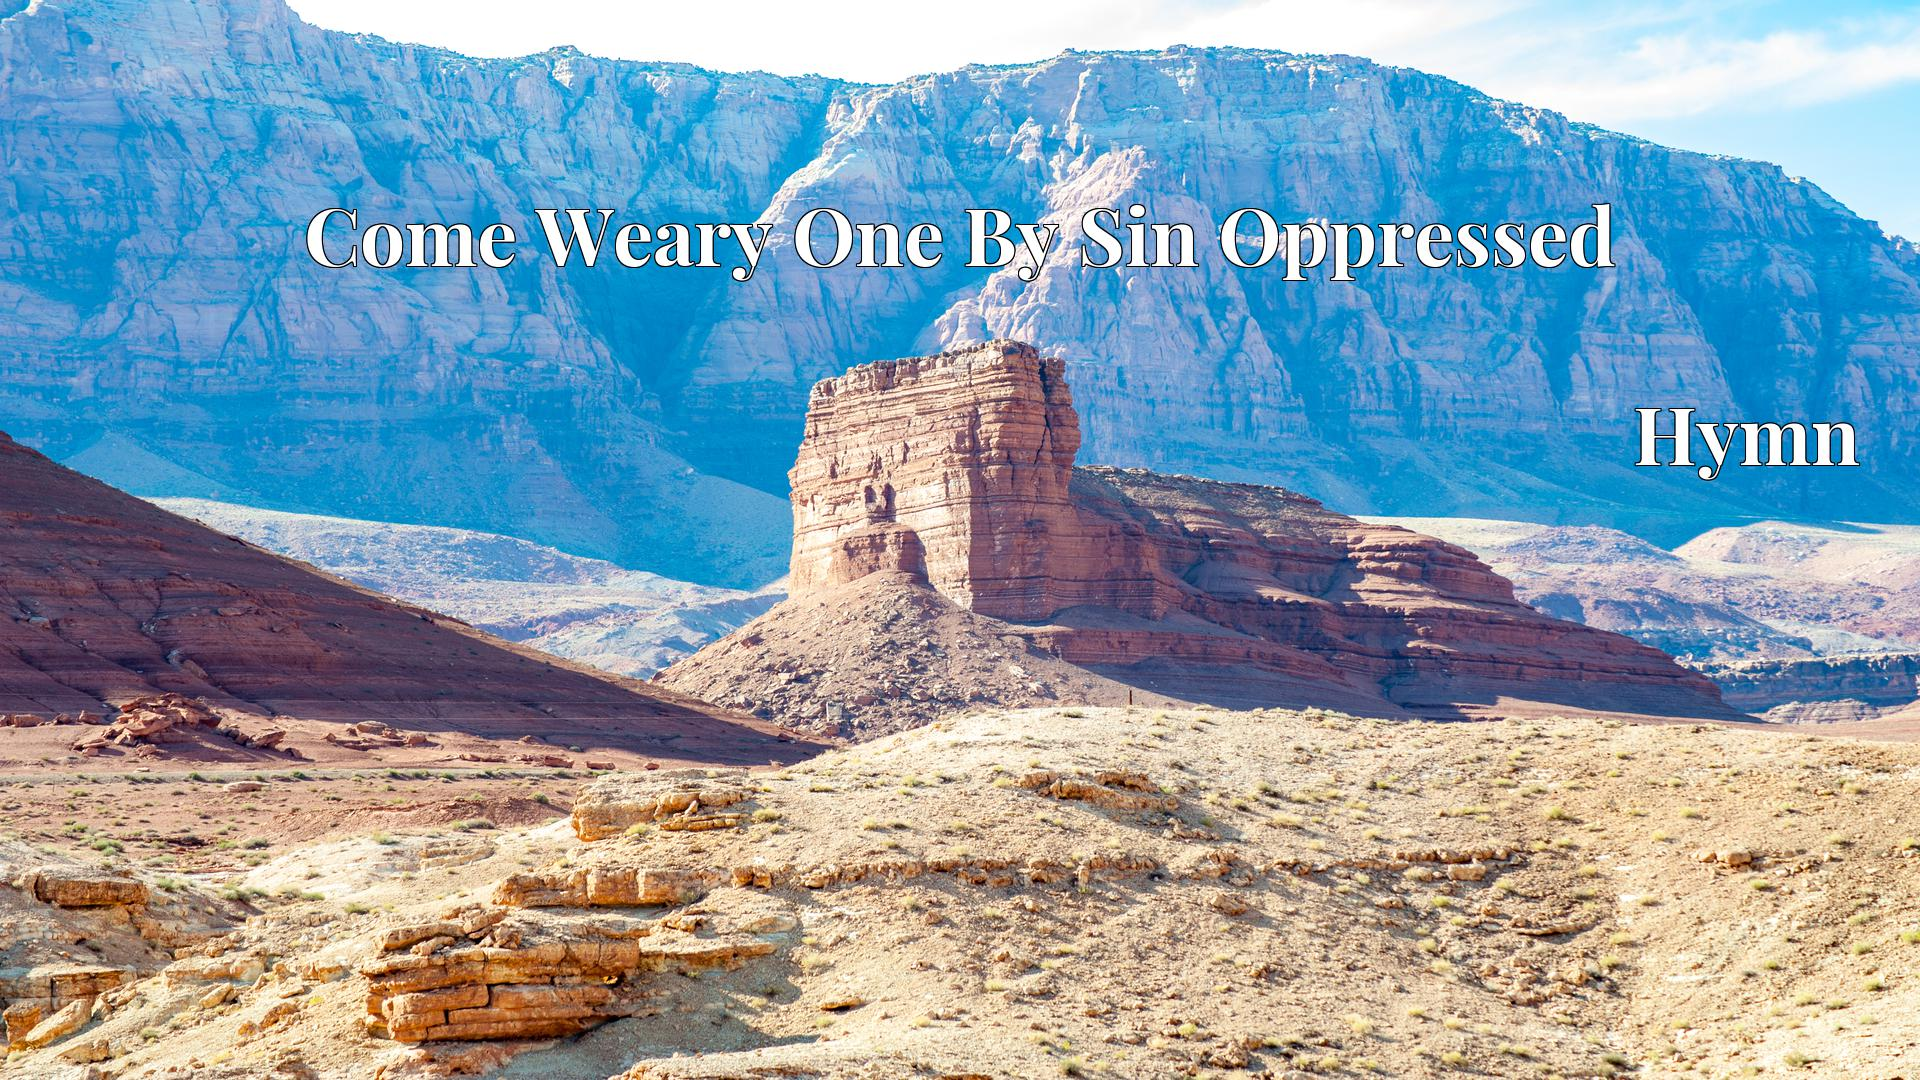 Come Weary One By Sin Oppressed - Hymn